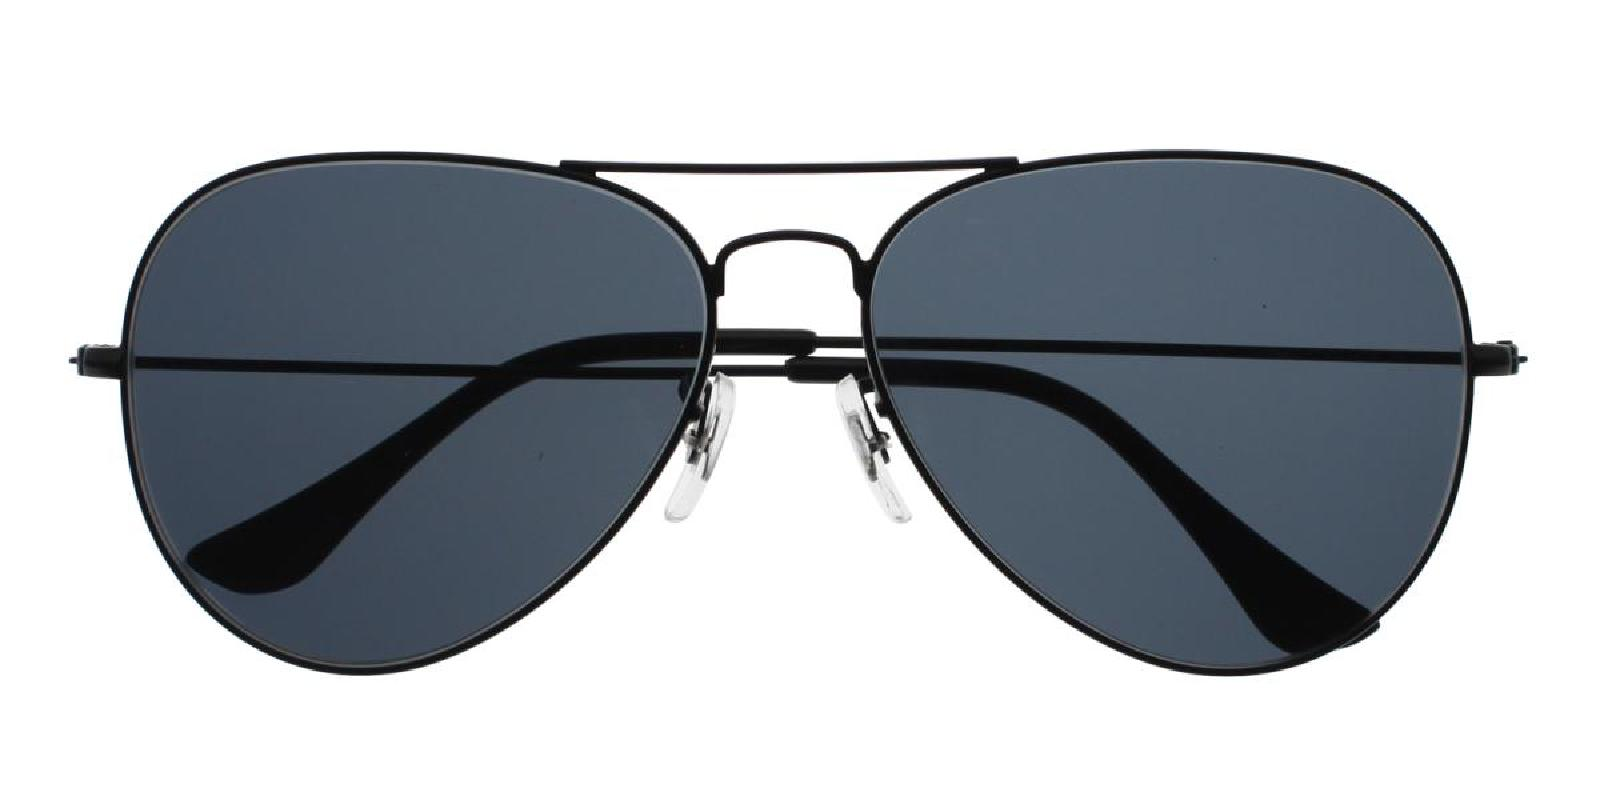 Aoline-Black-Aviator-Metal-Sunglasses-detail